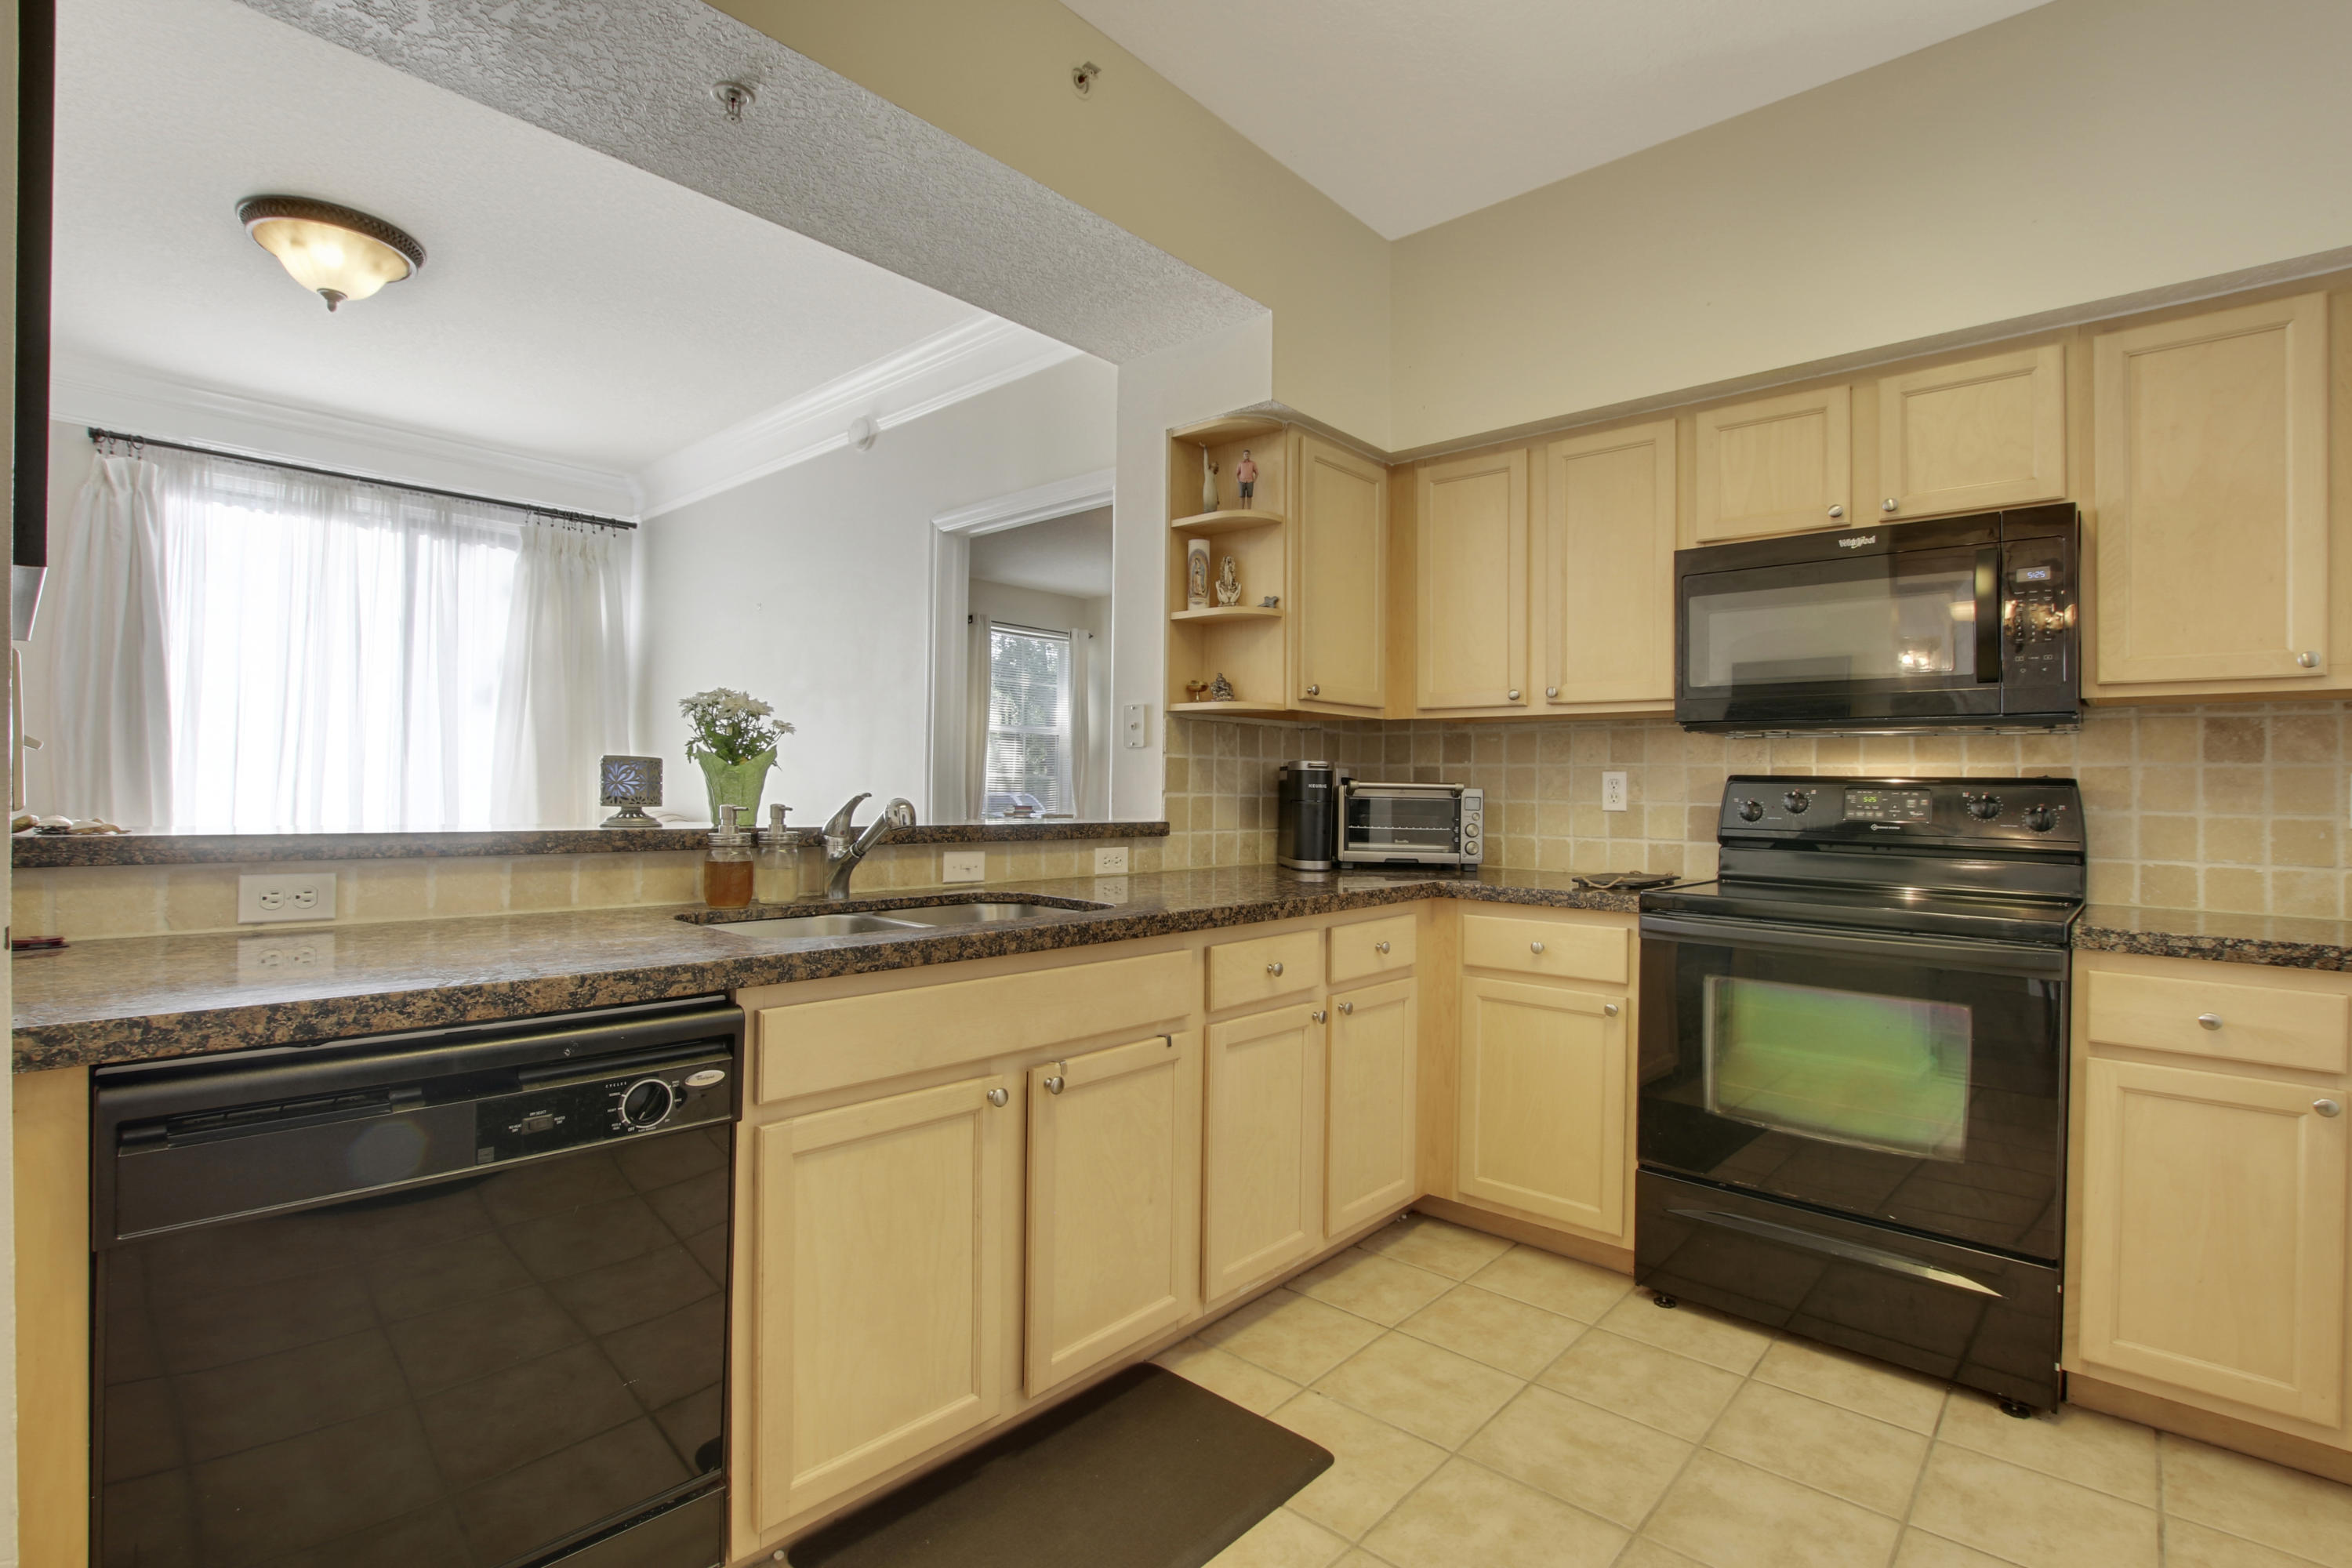 125 Galicia Way 103  - Abacoa Homes - photo 5